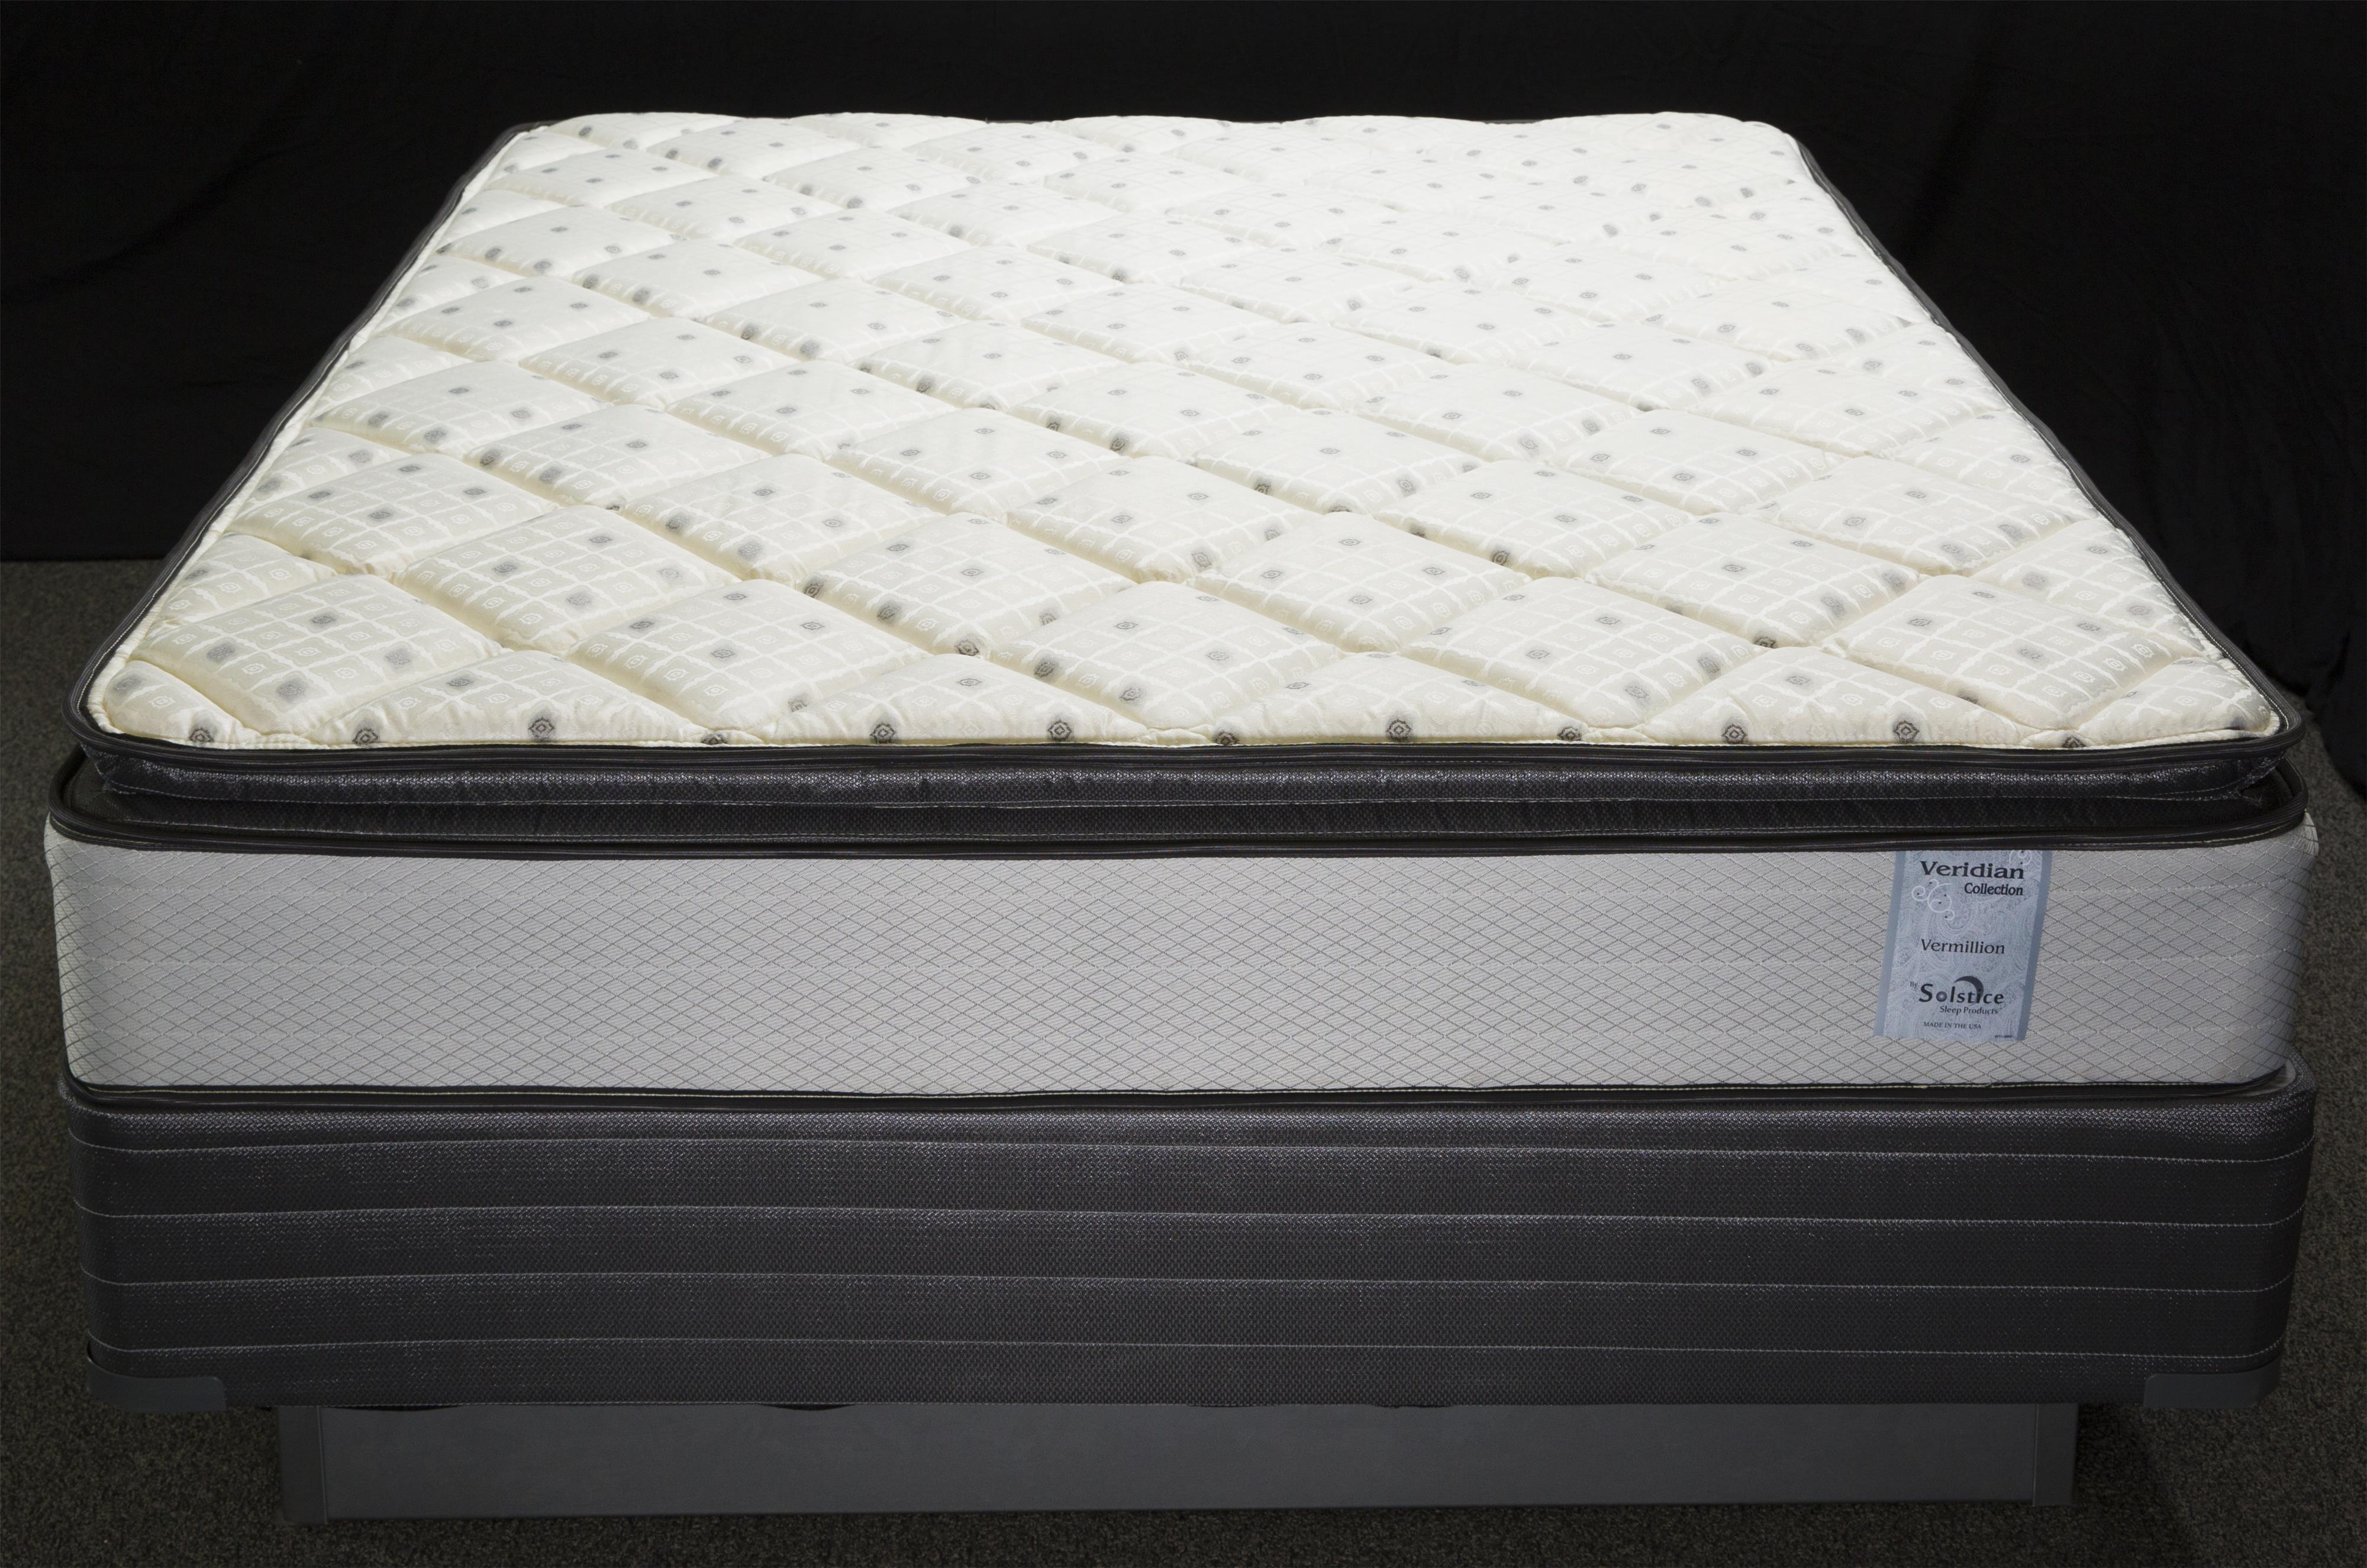 Veridian Vermillion Queen Pillow Top Mattress by Solstice Sleep Products at Virginia Furniture Market